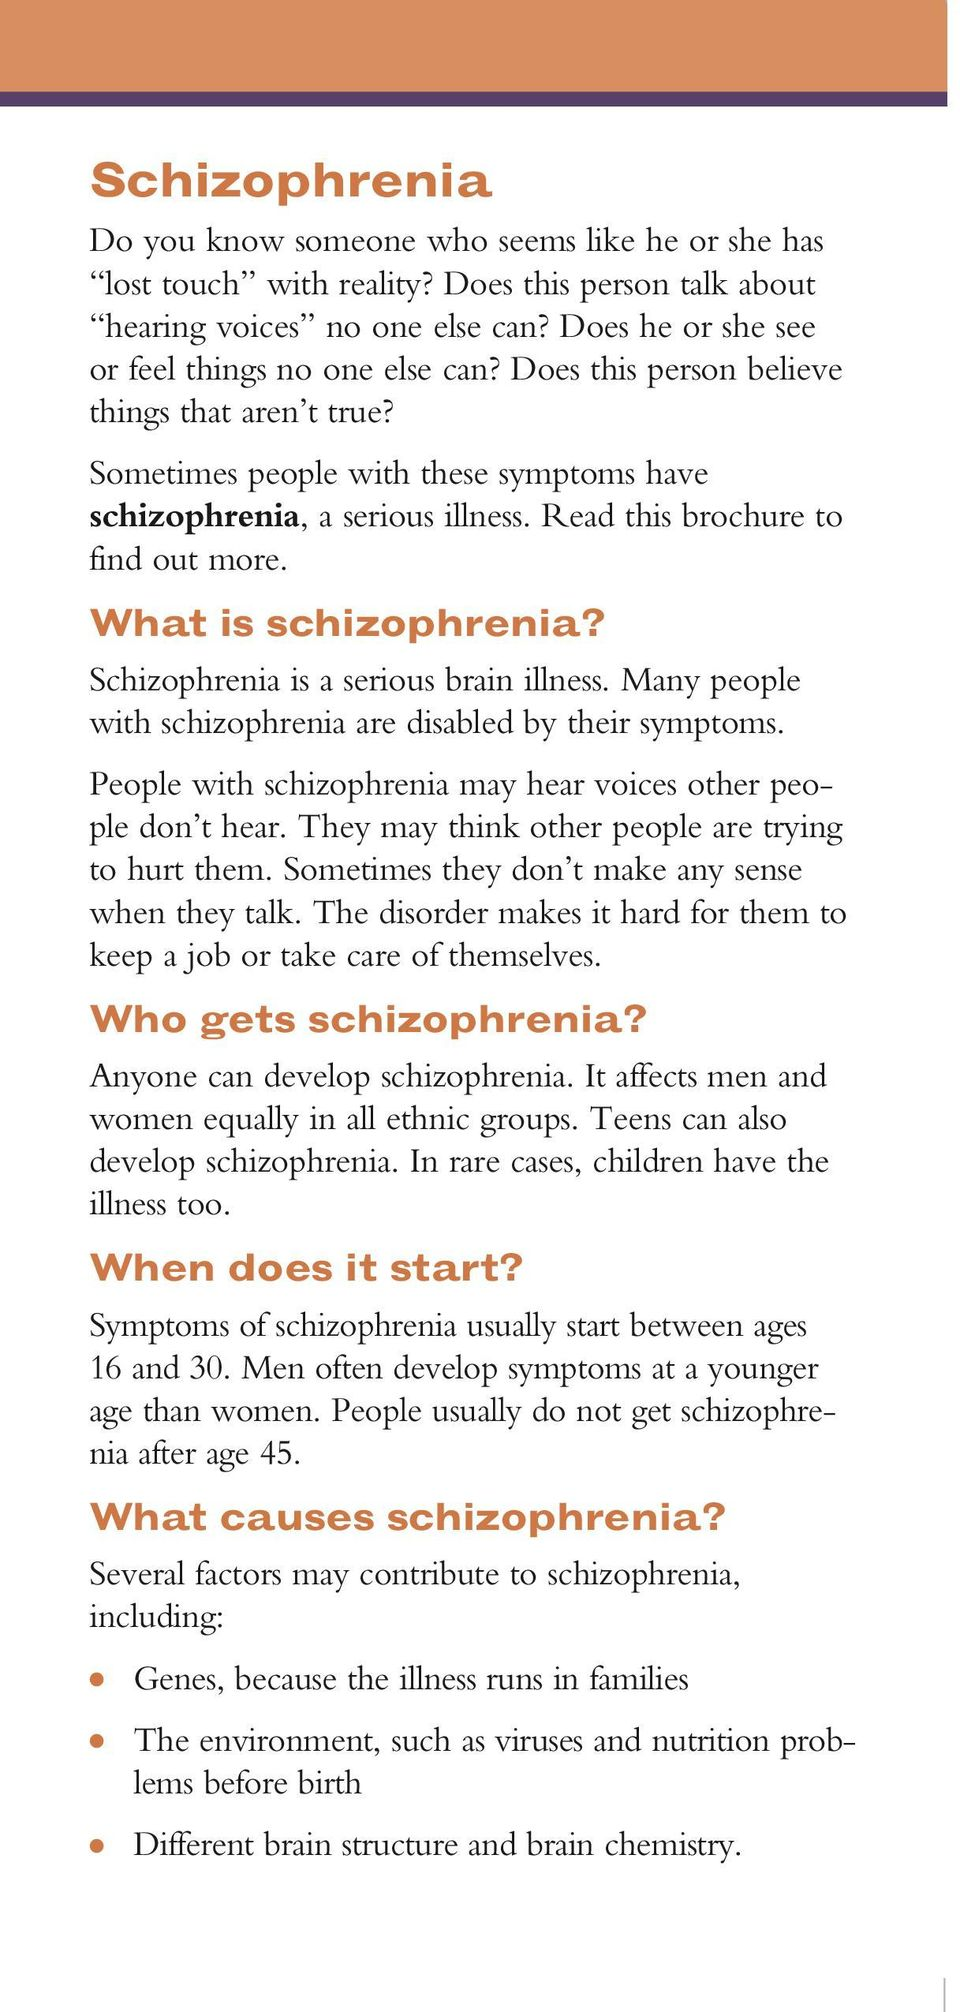 Schizophrenia is a serious brain illness. Many people with schizophrenia are disabled by their symptoms. People with schizophrenia may hear voices other people don t hear.